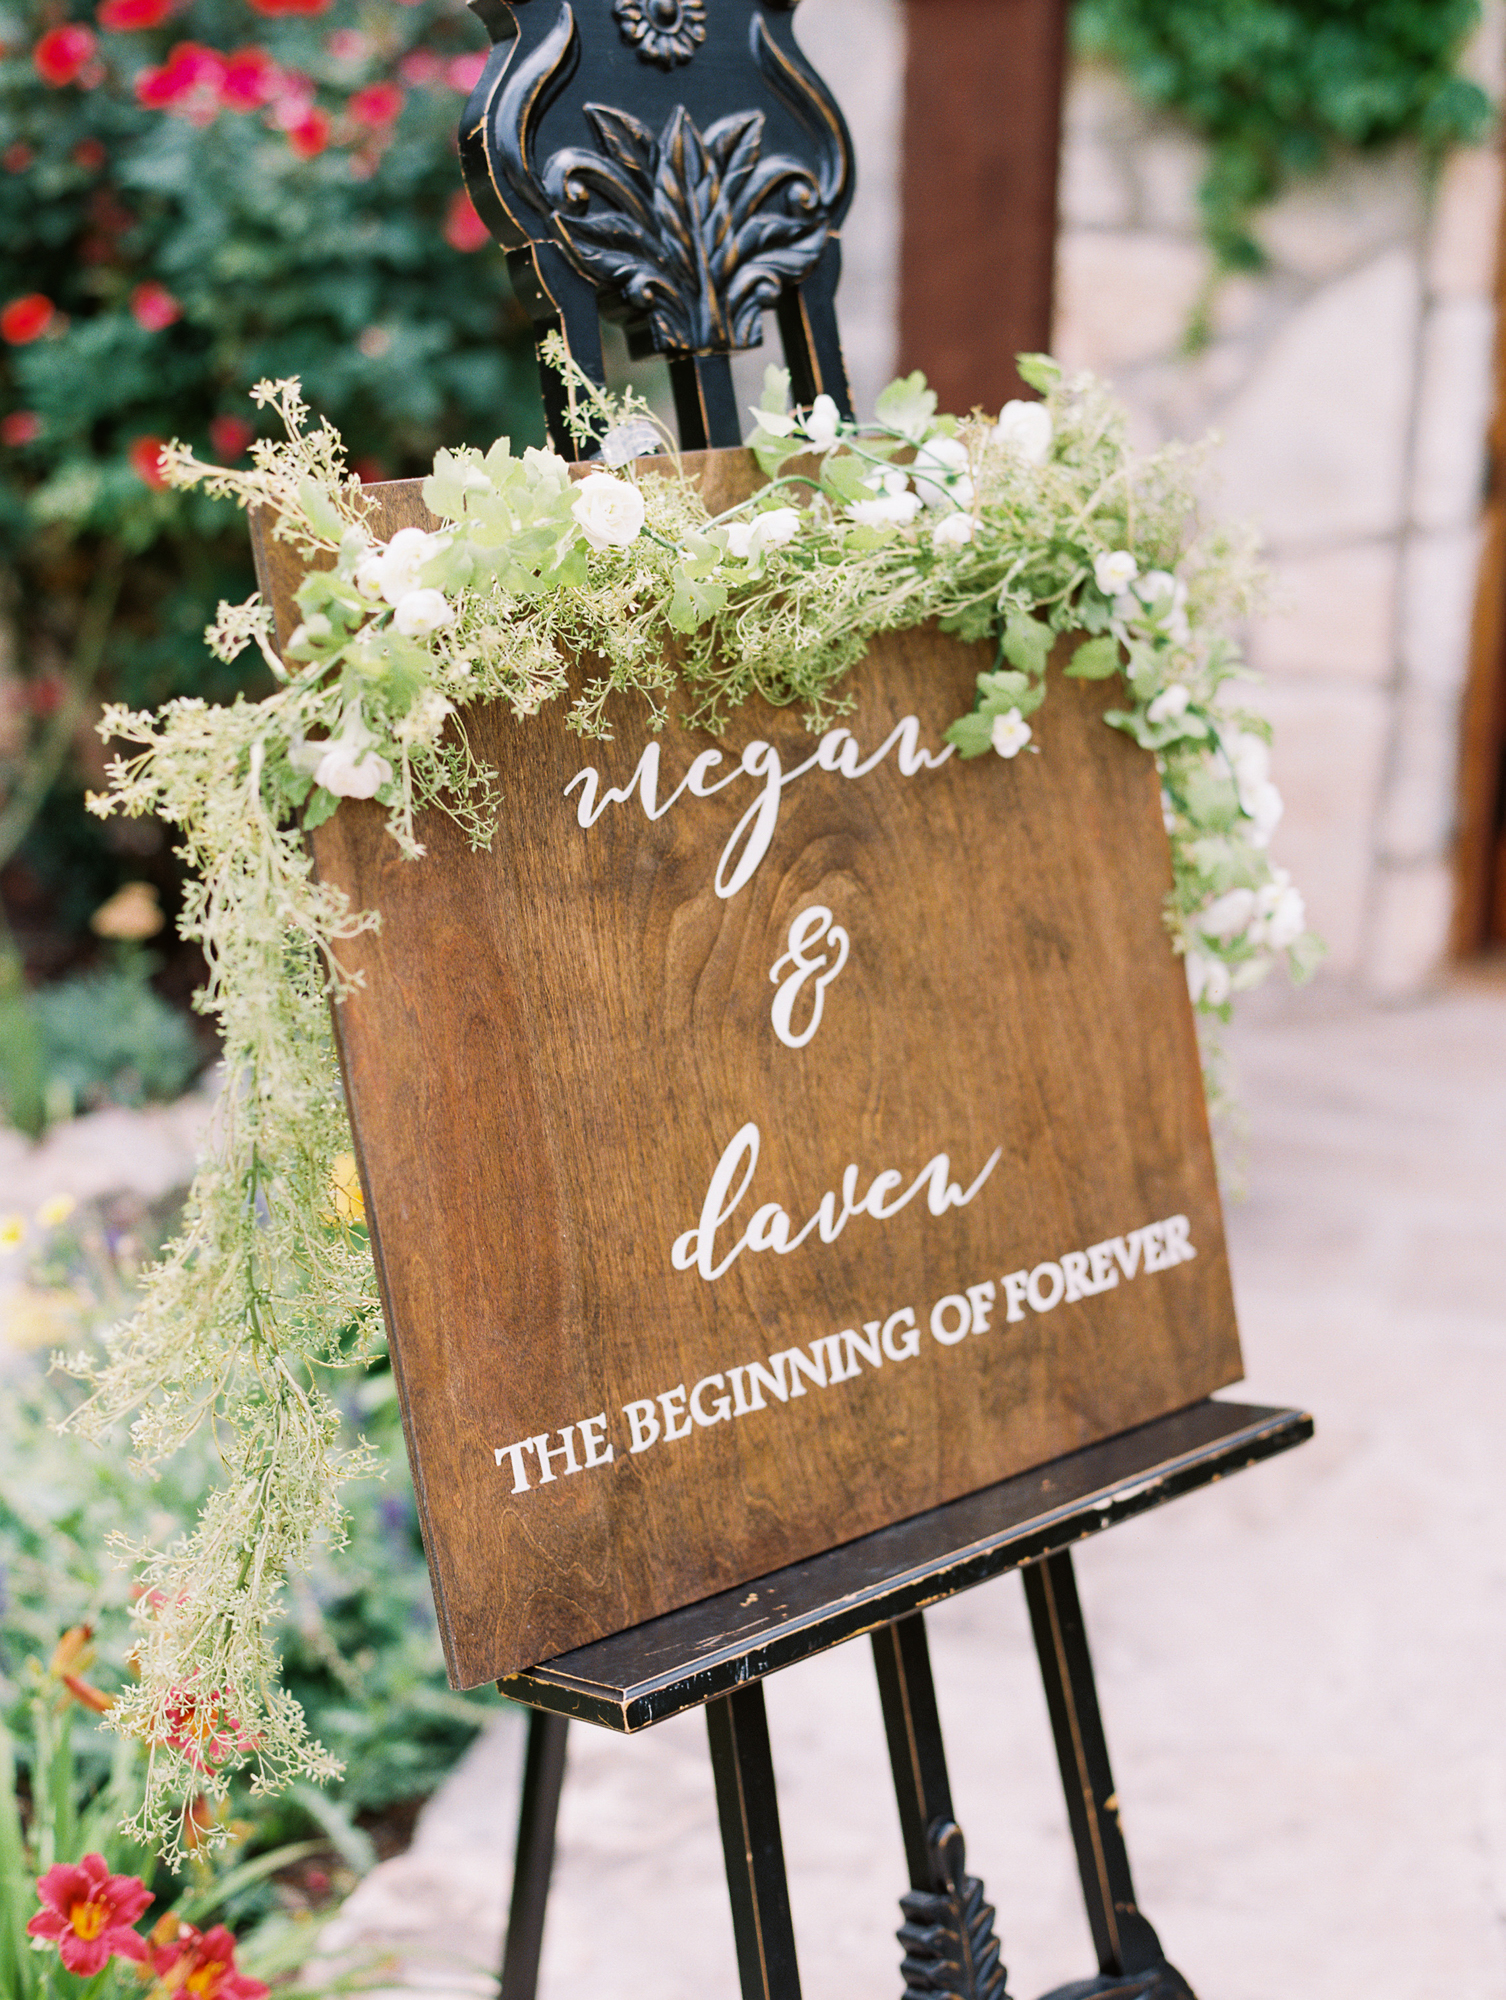 Elegant Spring Vineyard Wedding | Film Wedding Photographer | Austin Wedding Photographer | Lovely Wedding Sign | Britni Dean Photography // britnidean.com